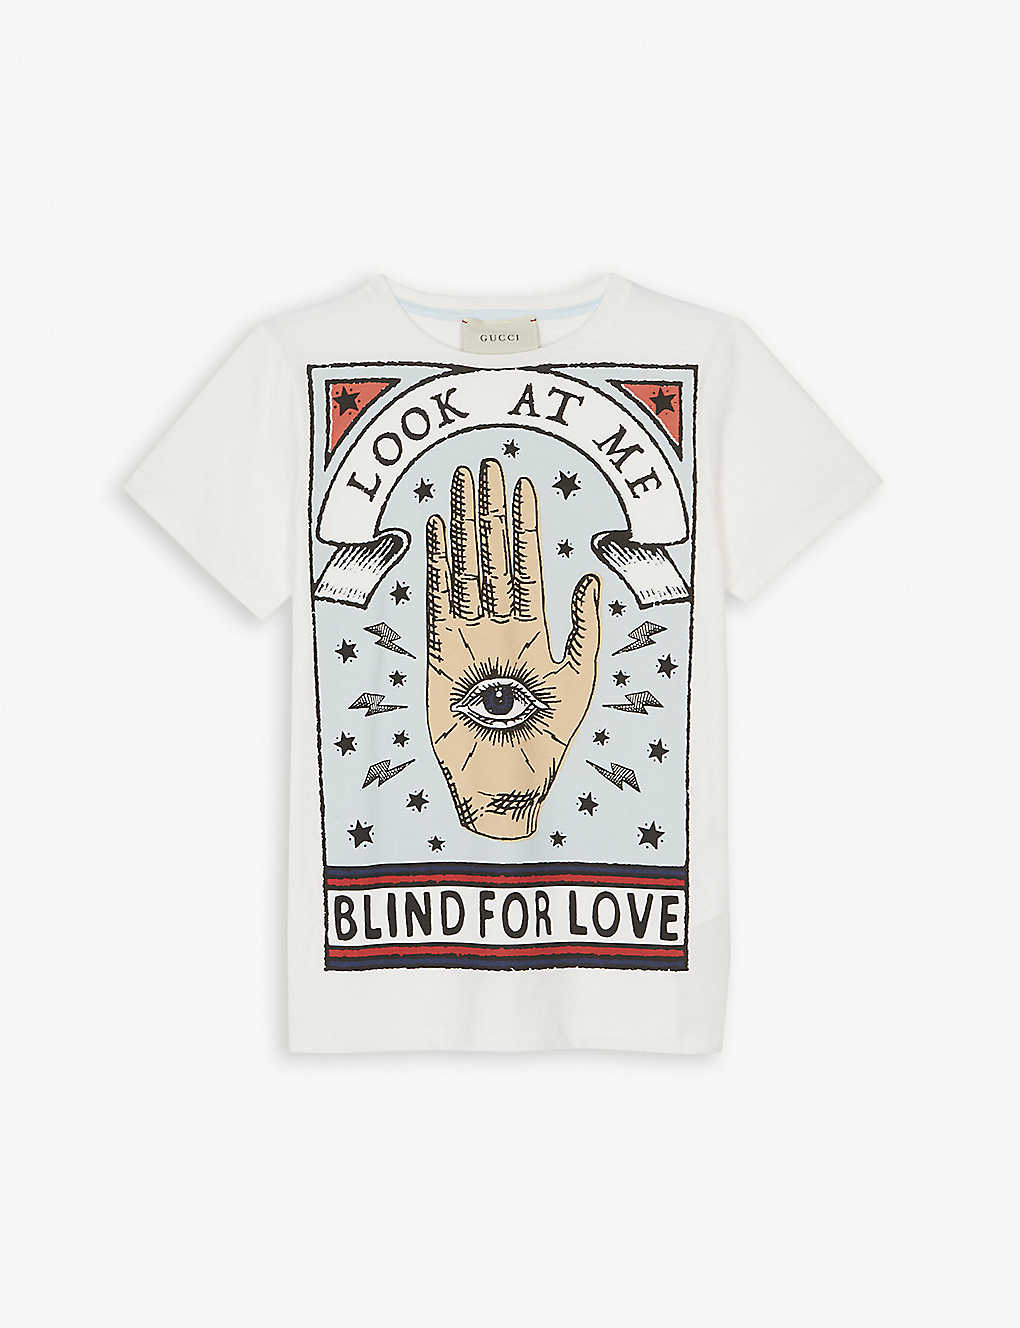 5332ca29 GUCCI - Blind for love cotton T-shirt 6-12 years | Selfridges.com